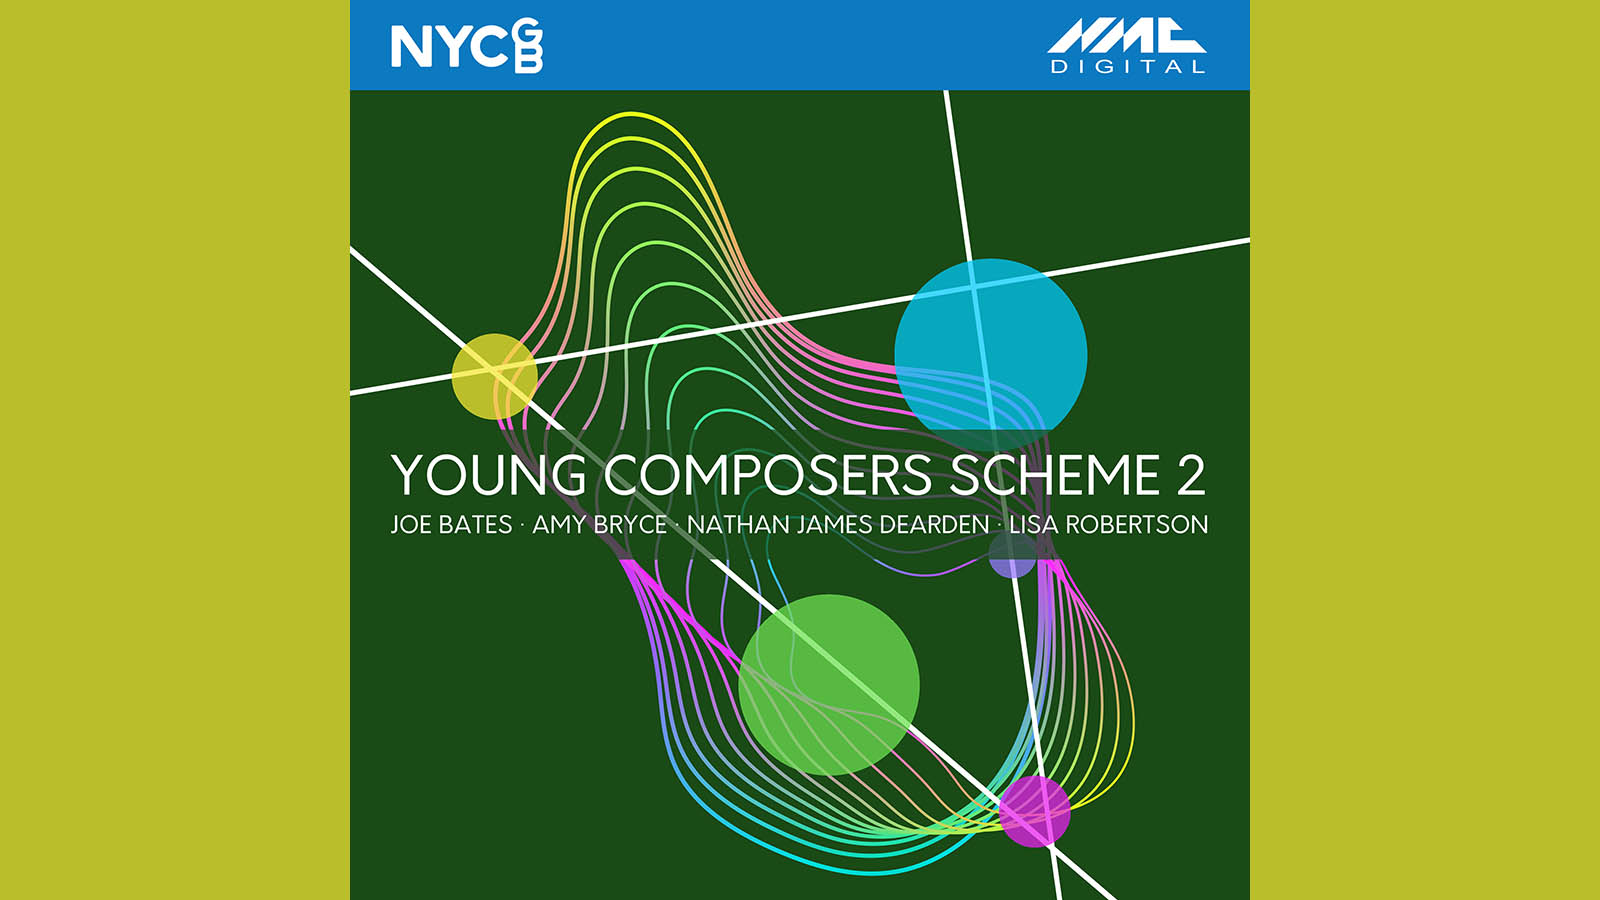 NMC NYCGB CD cover